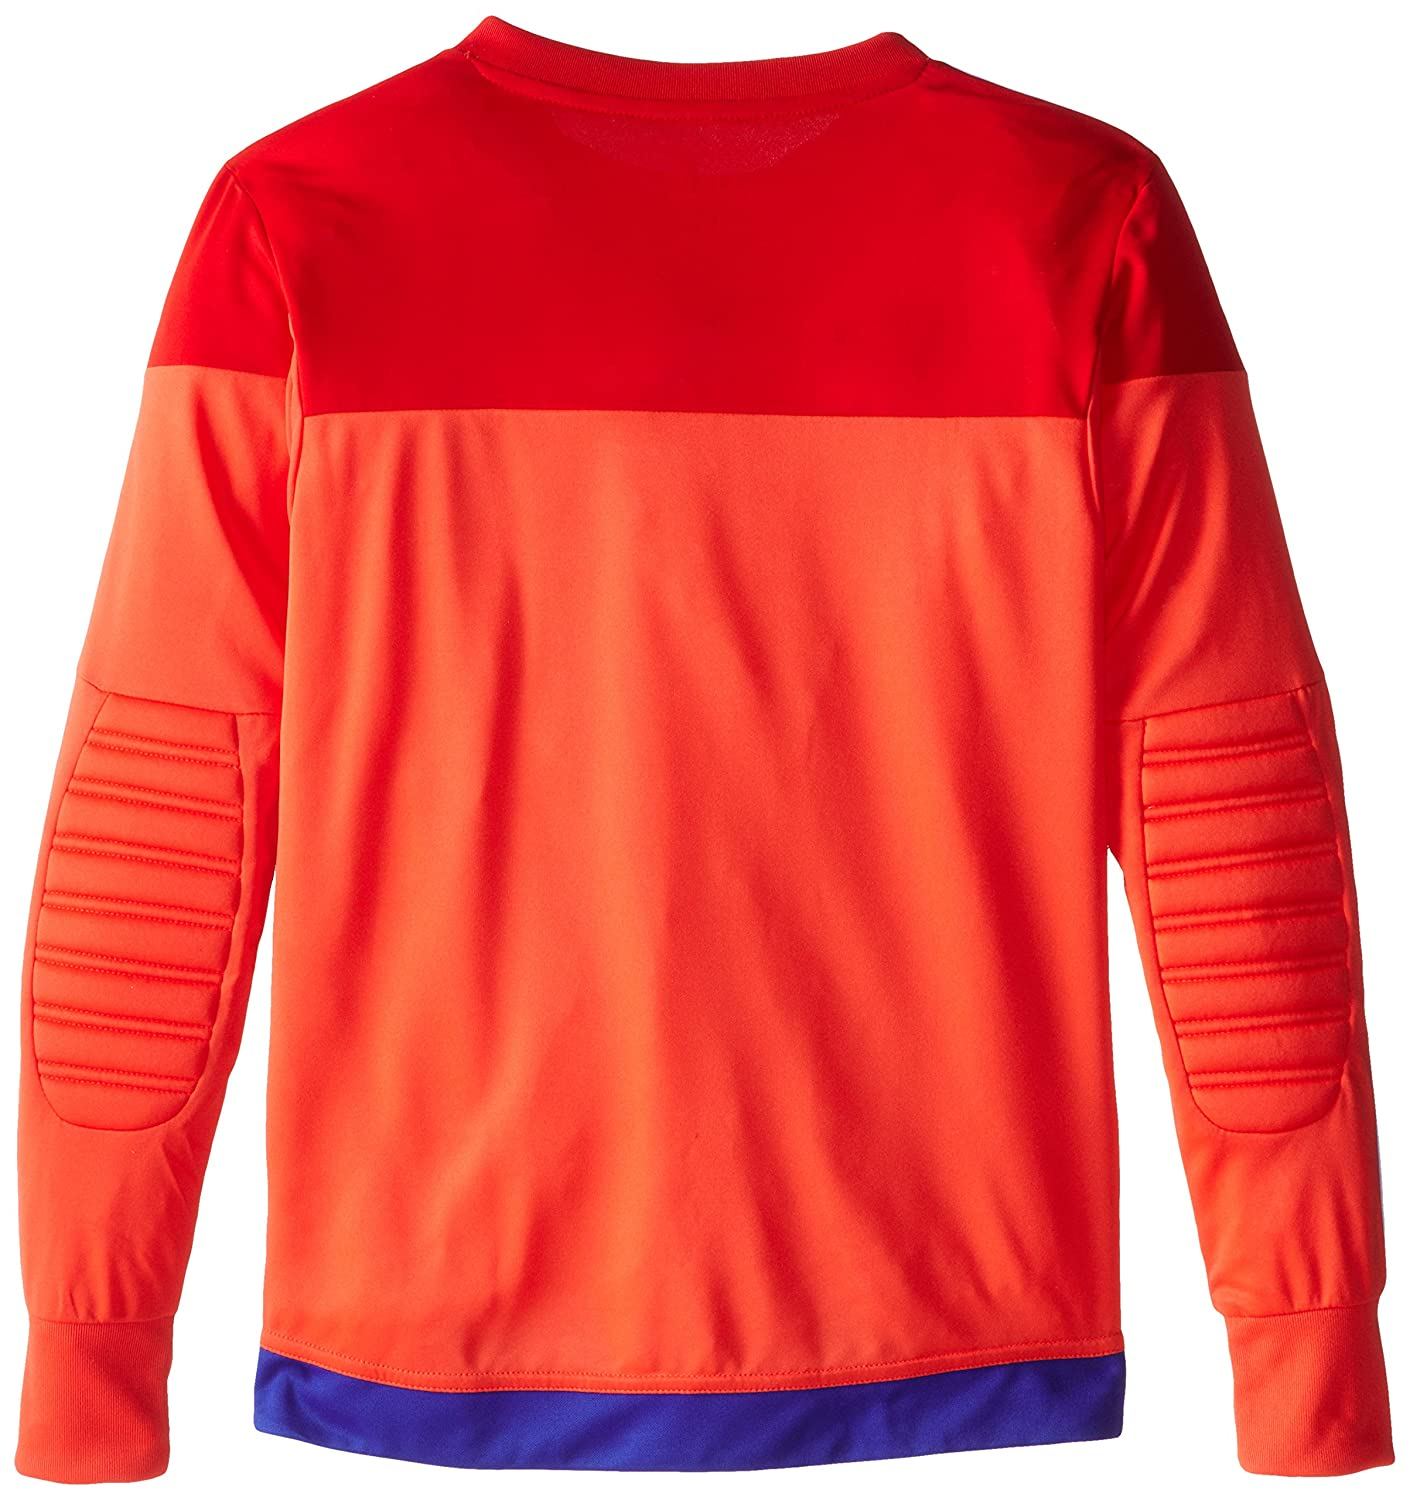 1e92bcdcc07 Amazon.com: adidas Performance Youth Top Goalkeeping Jersey: Sports &  Outdoors